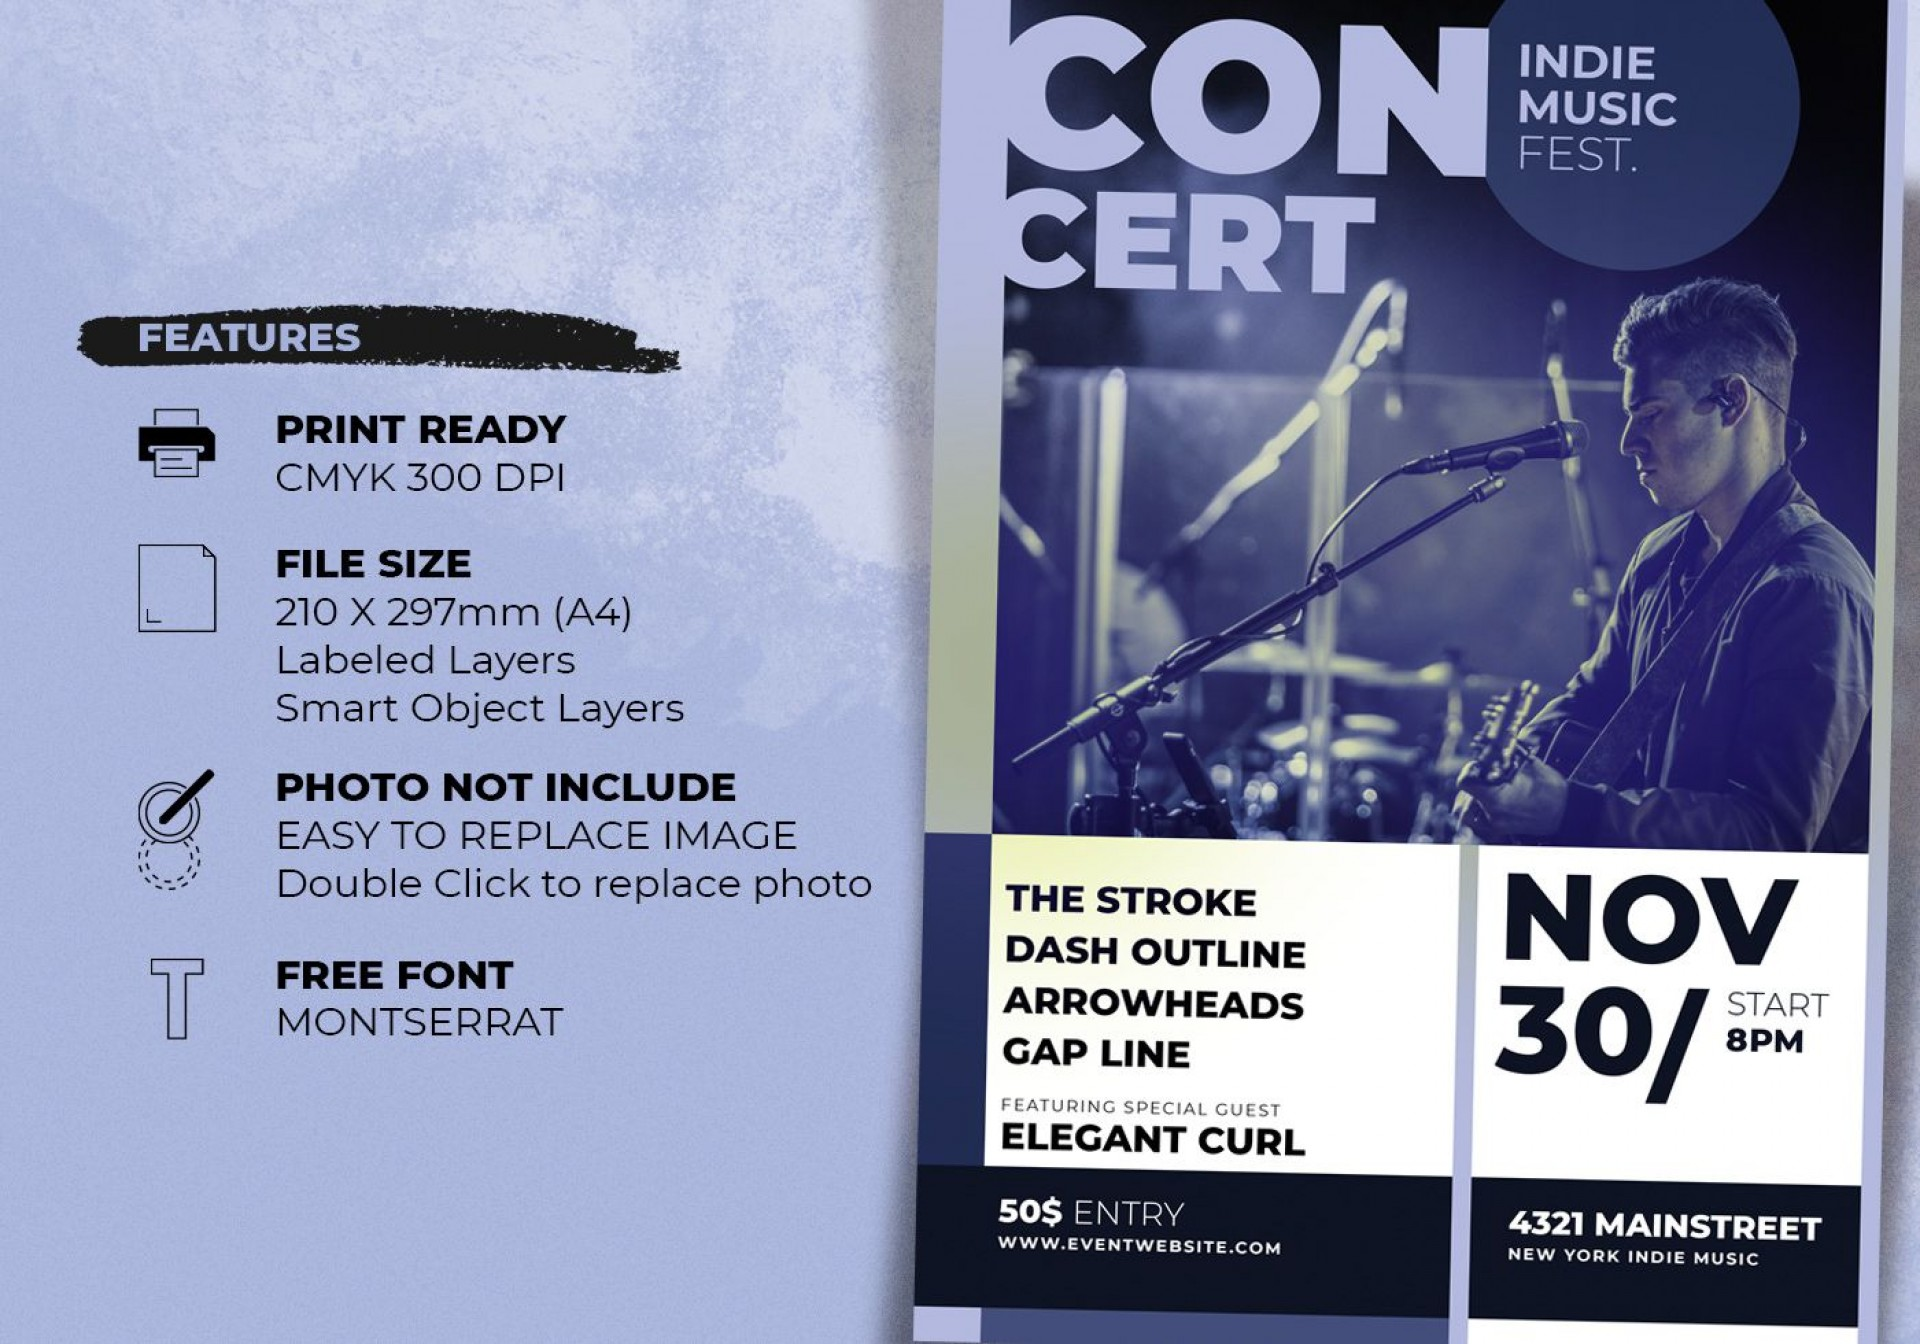 006 Fearsome Free Photoshop Concert Poster Template Highest Quality  Templates1920